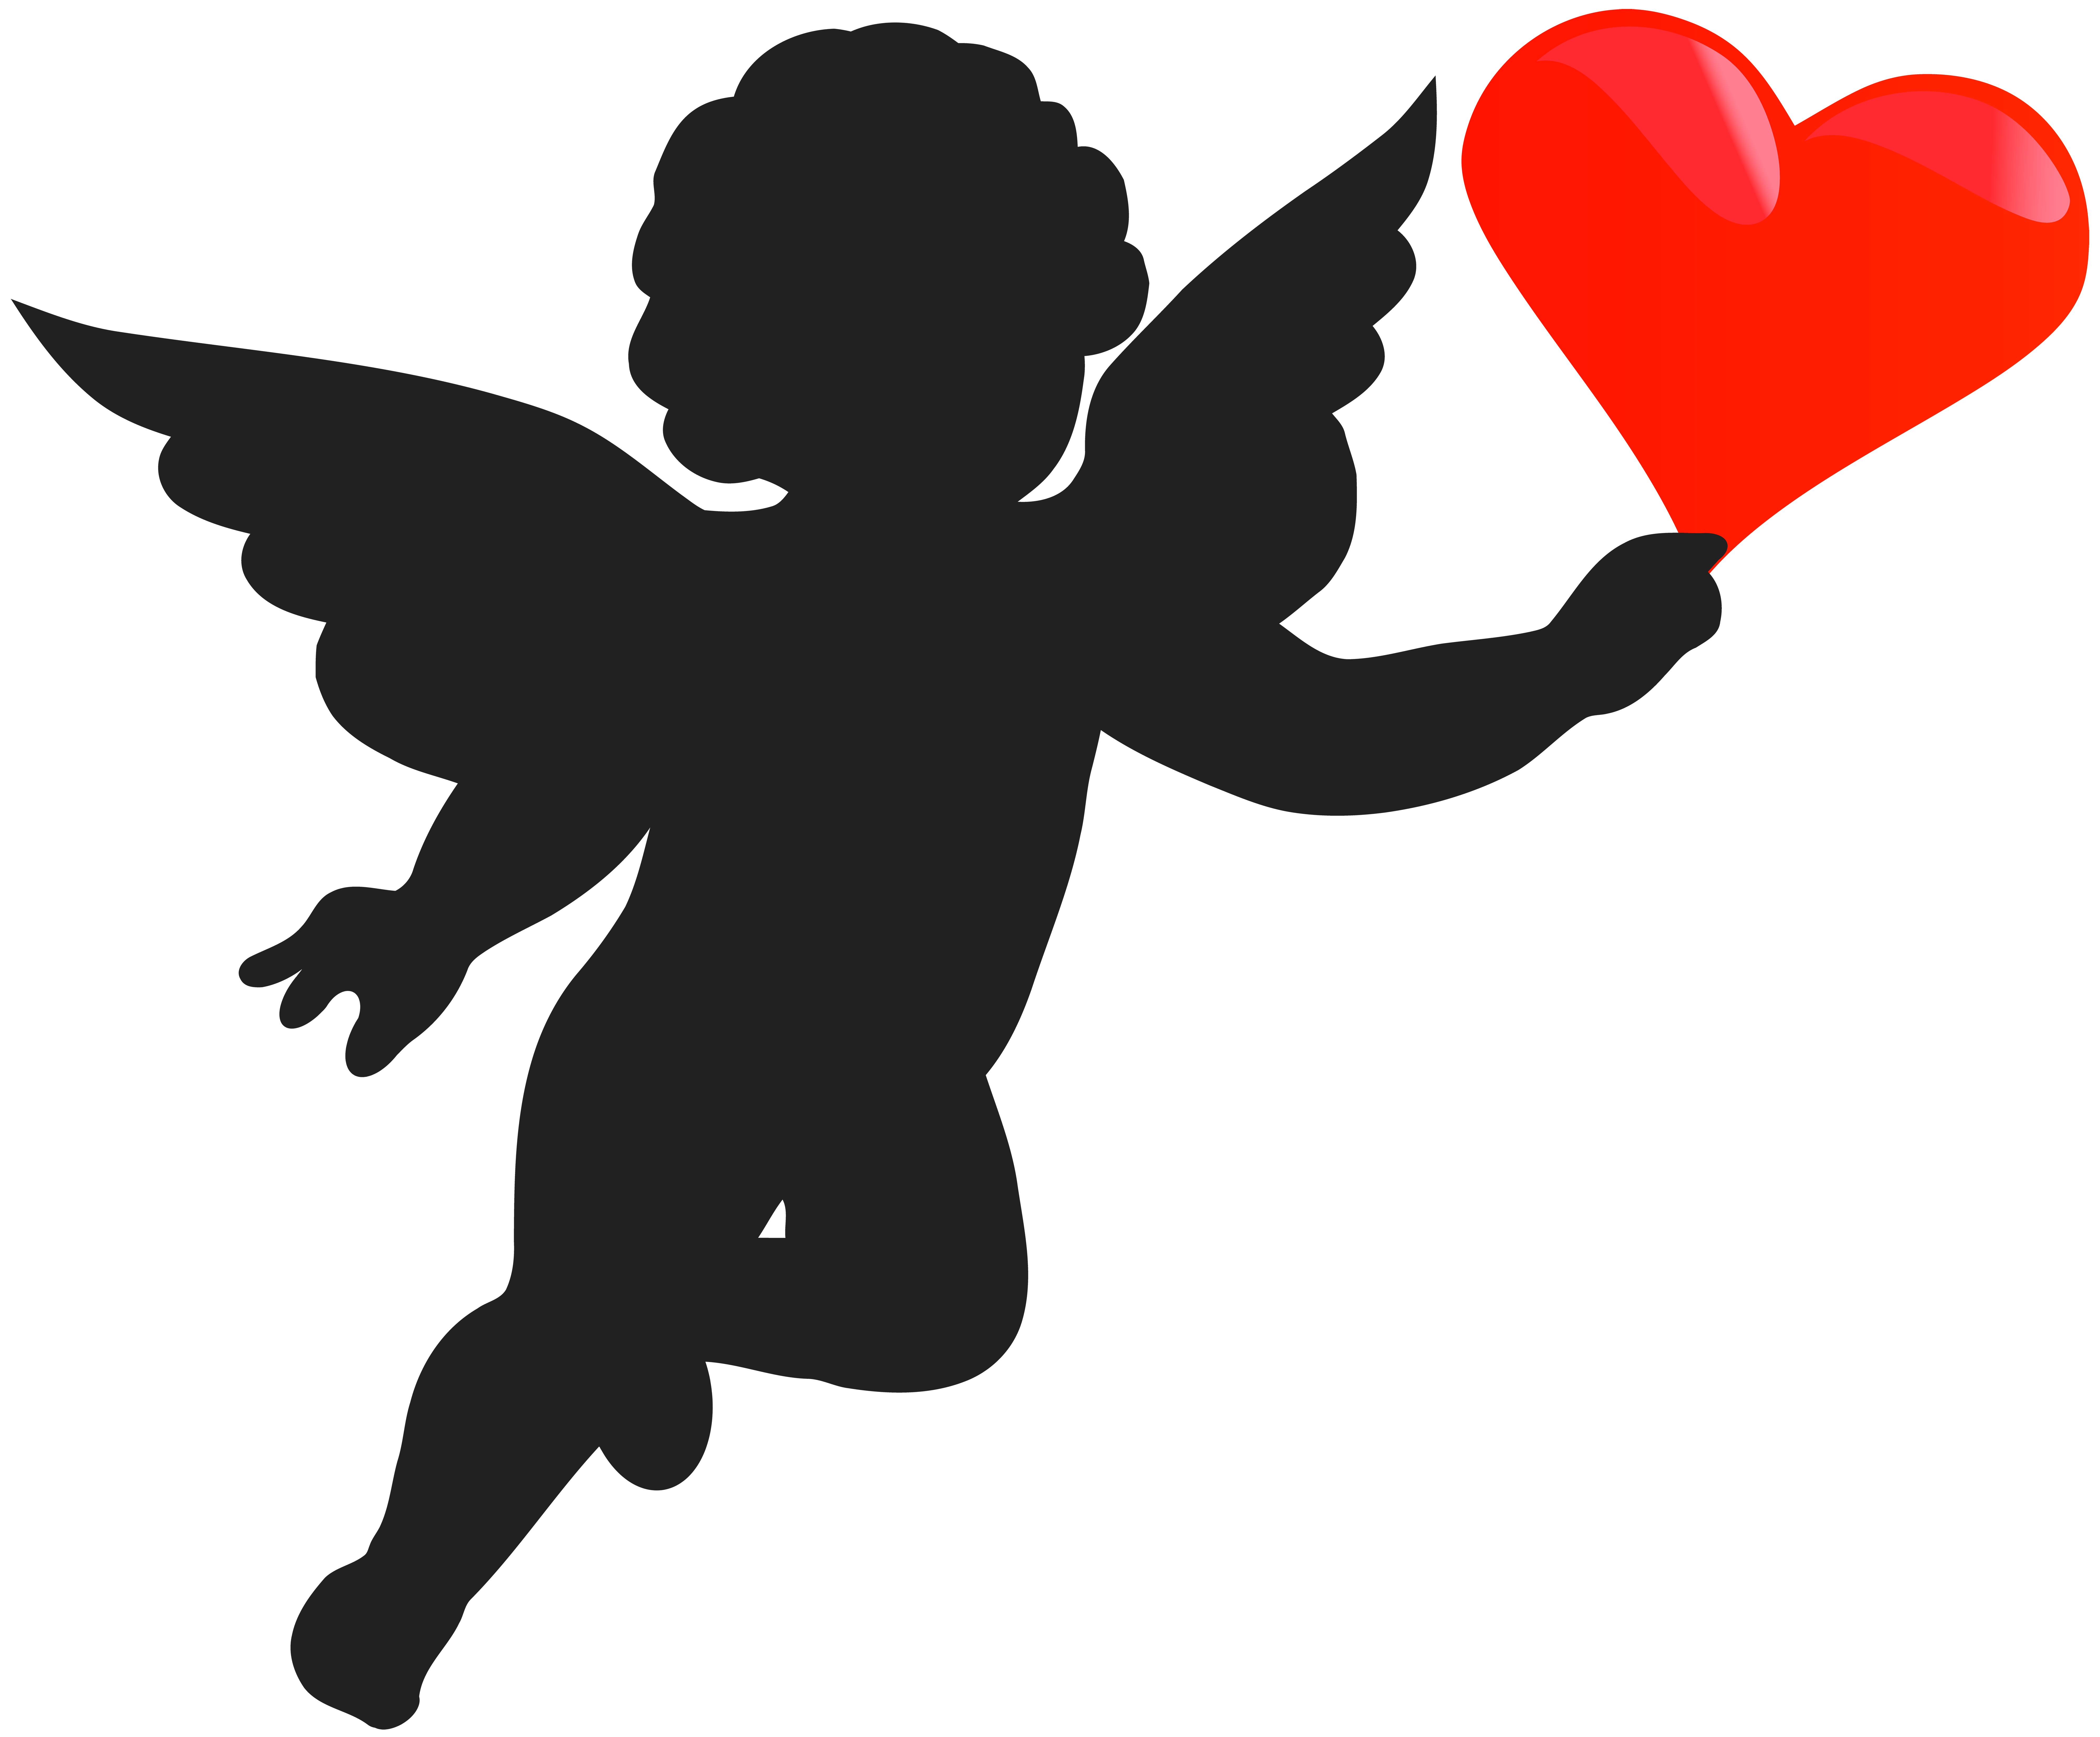 8000x6619 Cupid With Heart Silhouette Png Clip Art Imageu200b Gallery